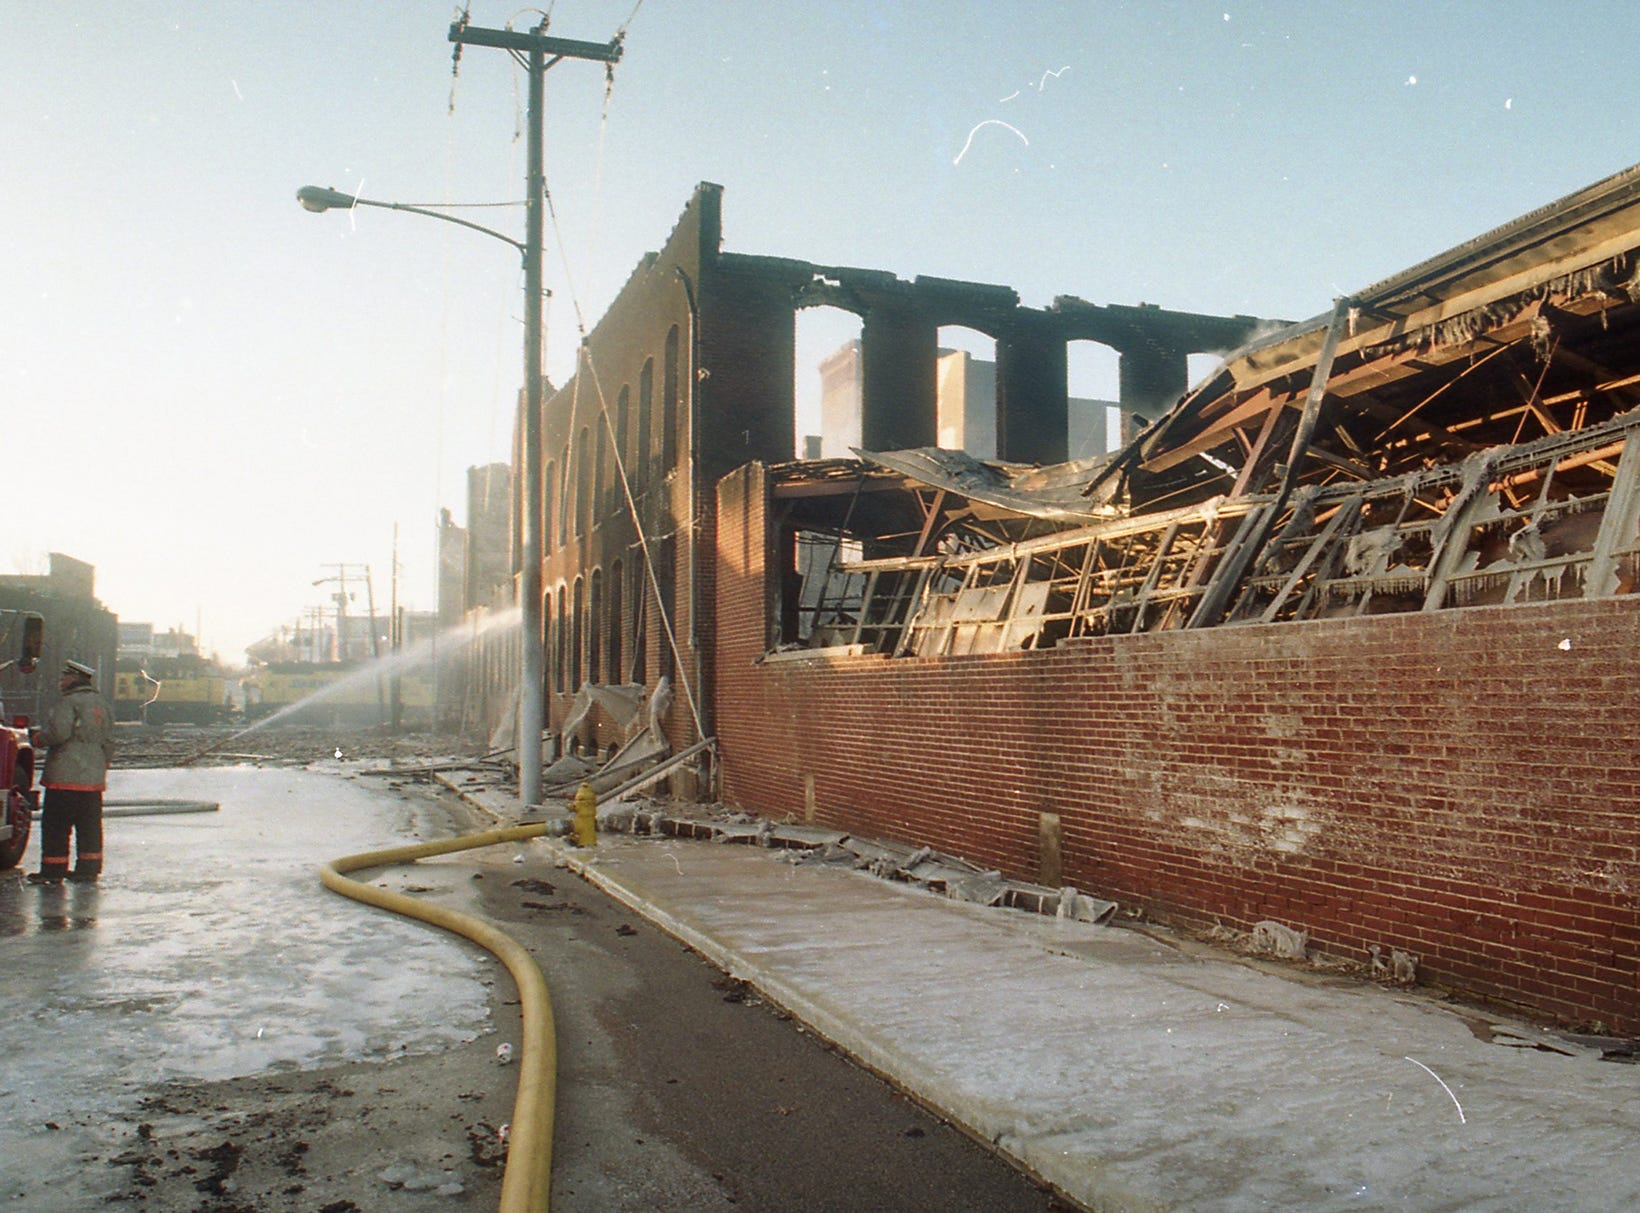 The ruins of the Thonet complex the morning after the fire. A fire began at the former Thonet Furniture plant at 491 East Princess Street on December 11, 1993. Eventually, the four alarm fire spread through the complex of buildings and several other properties.